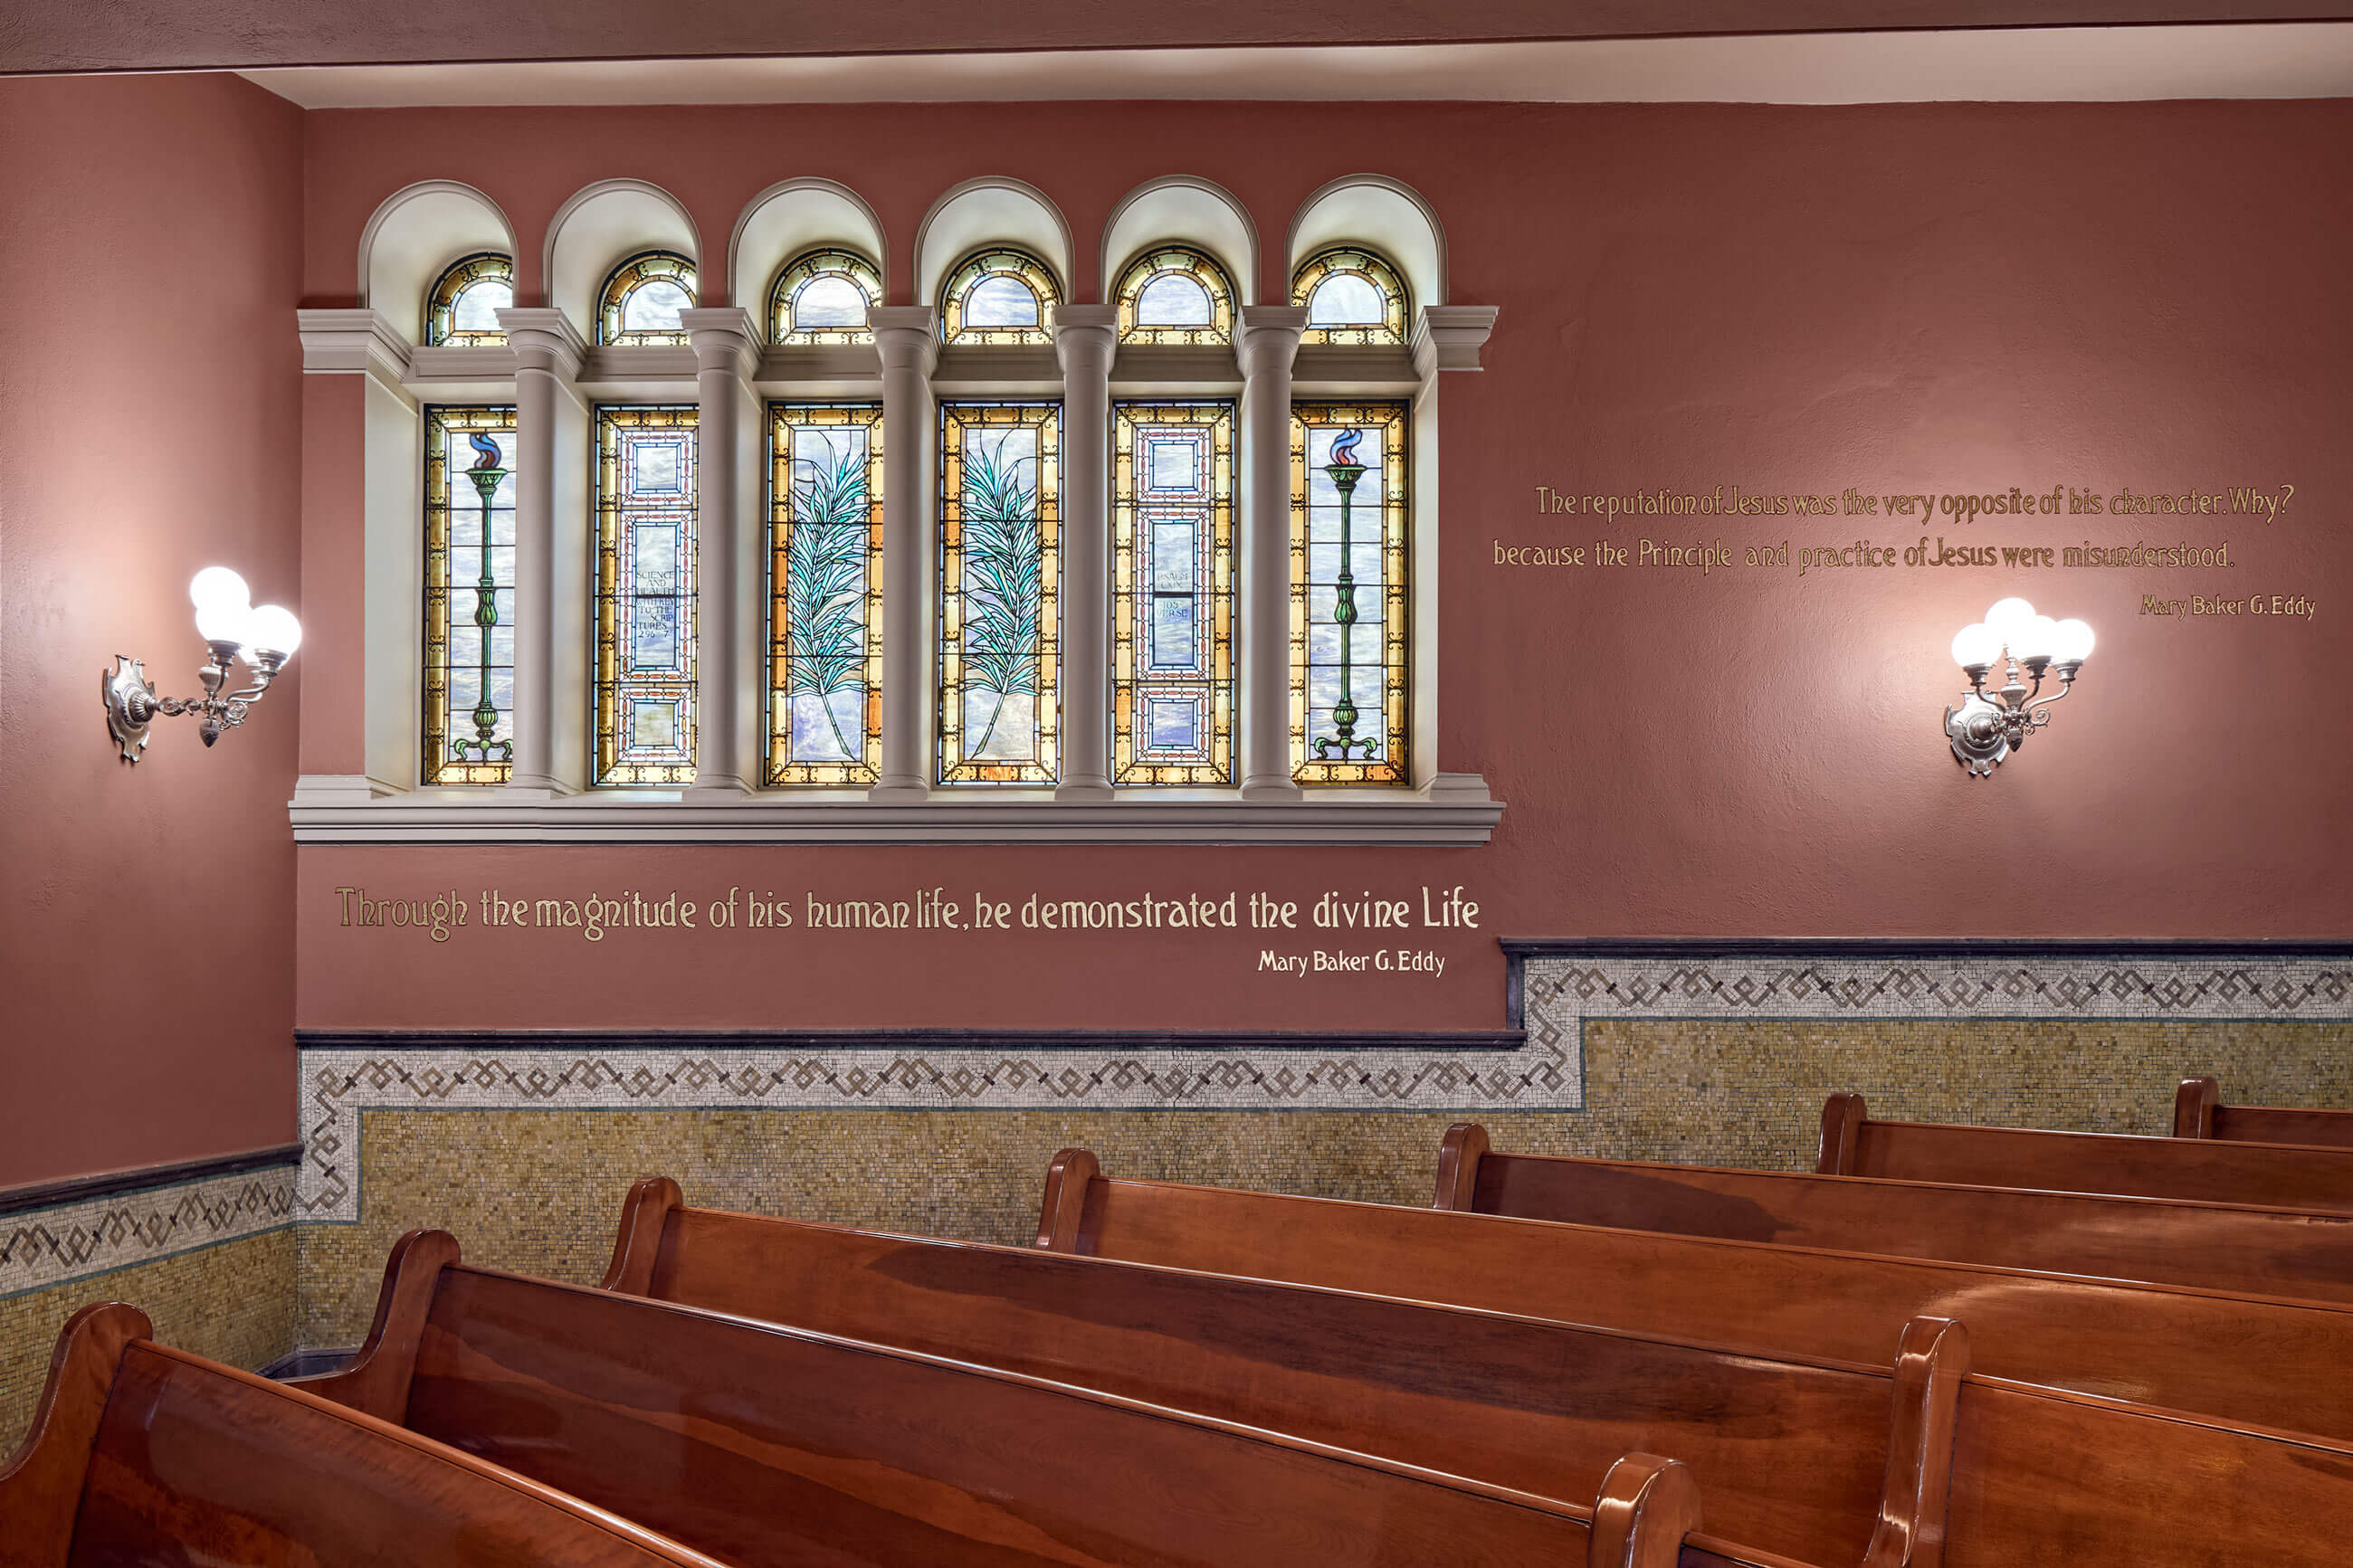 Detailed shot of restored, arched stained glass windows, with a quotation from Mary Baker G. Eddy in gold lettering and restored mosaics below.